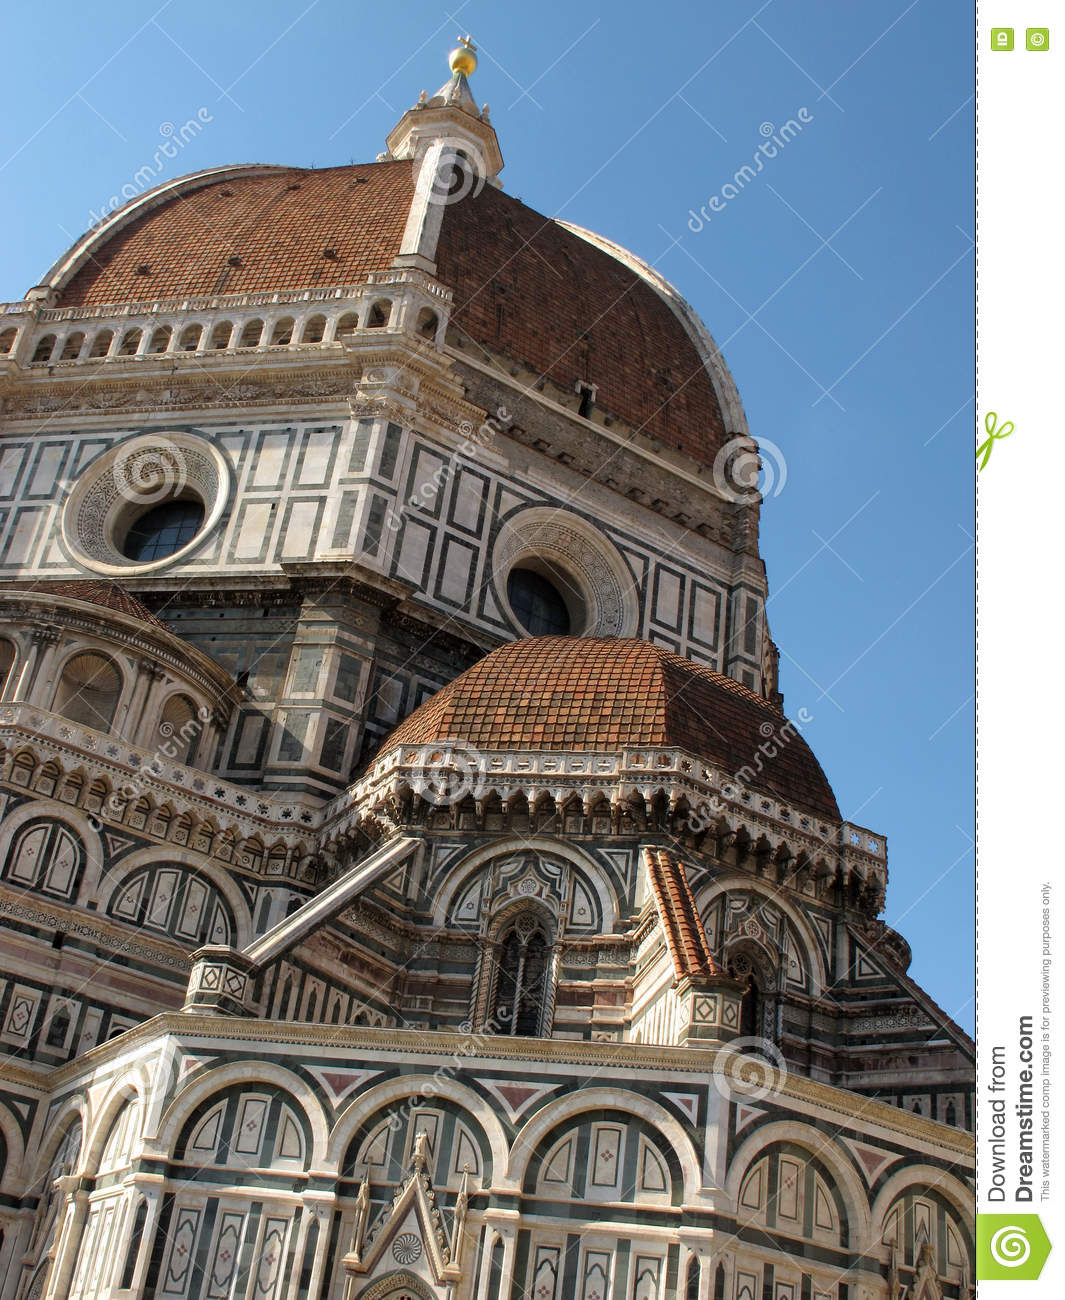 an analysis of the duomo of florence cathedral church The cathedral complex, situated in the piazza del duomo (cathedral square), comprises three buildings: the cathedral itself, the baptistery and giotto's campanile (bell-tower) all three buildings are included within the area of central florence which is designated as a unesco world heritage site.